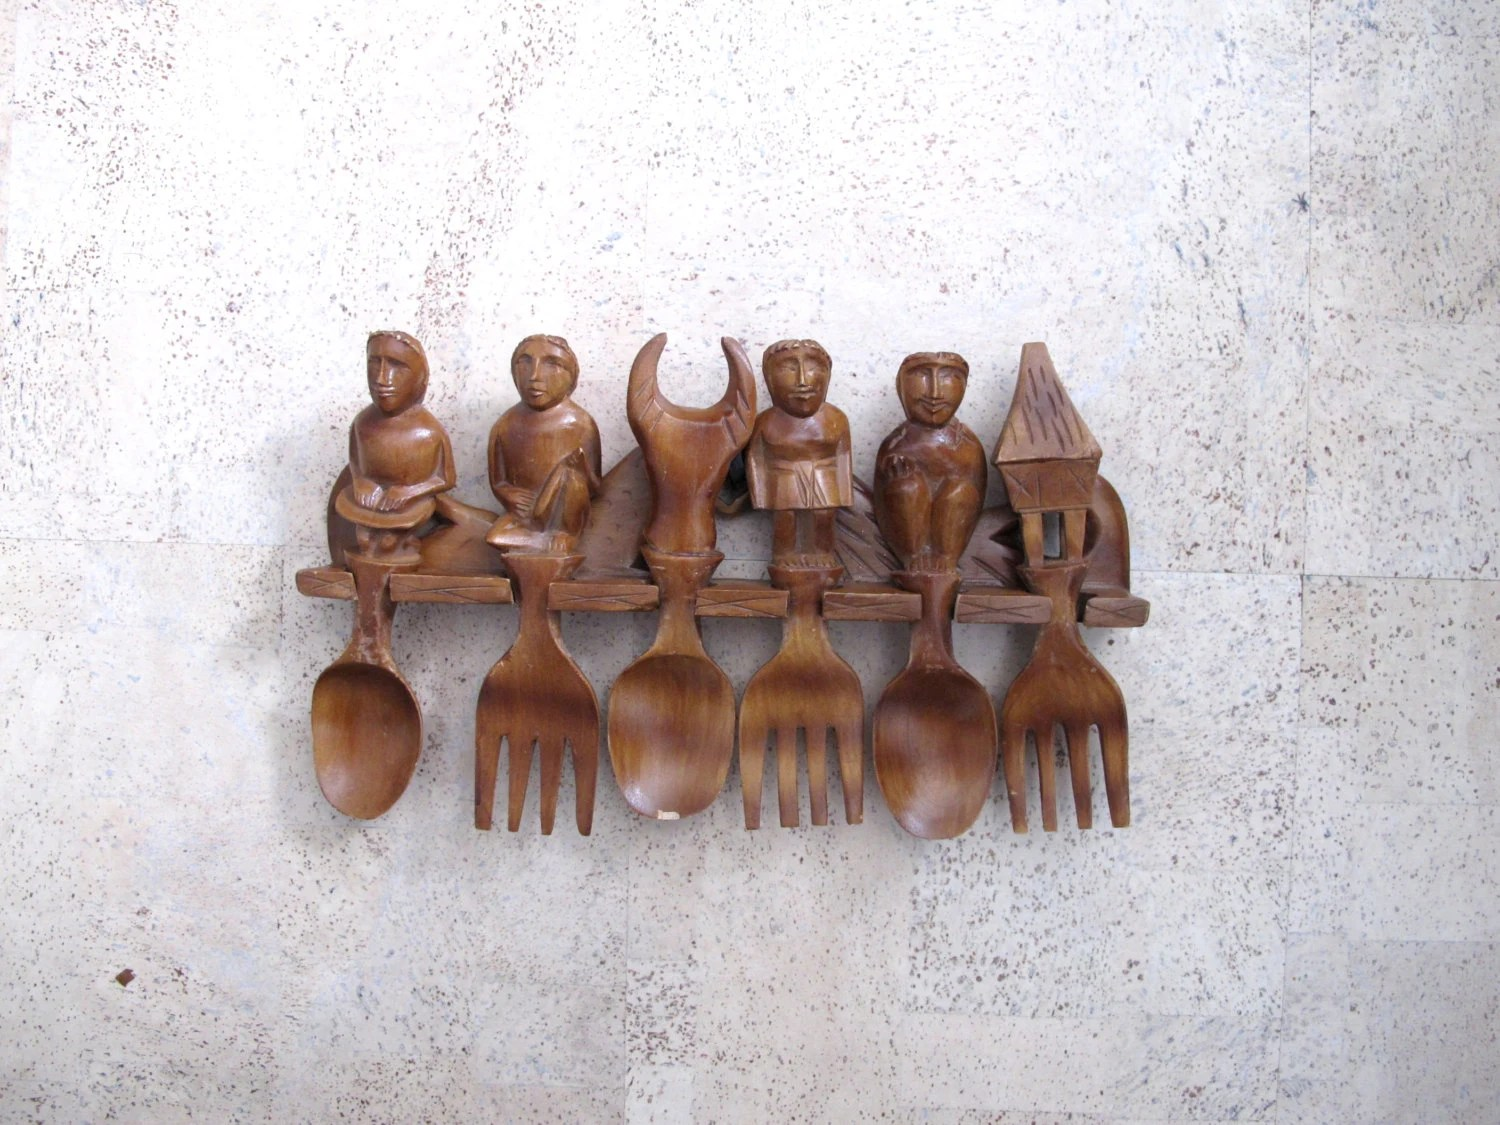 Vintage Folk Art Carved Wood Figural Spoons Forks Kitchen Wall Hanging Folk Art - BlueRoseRetro